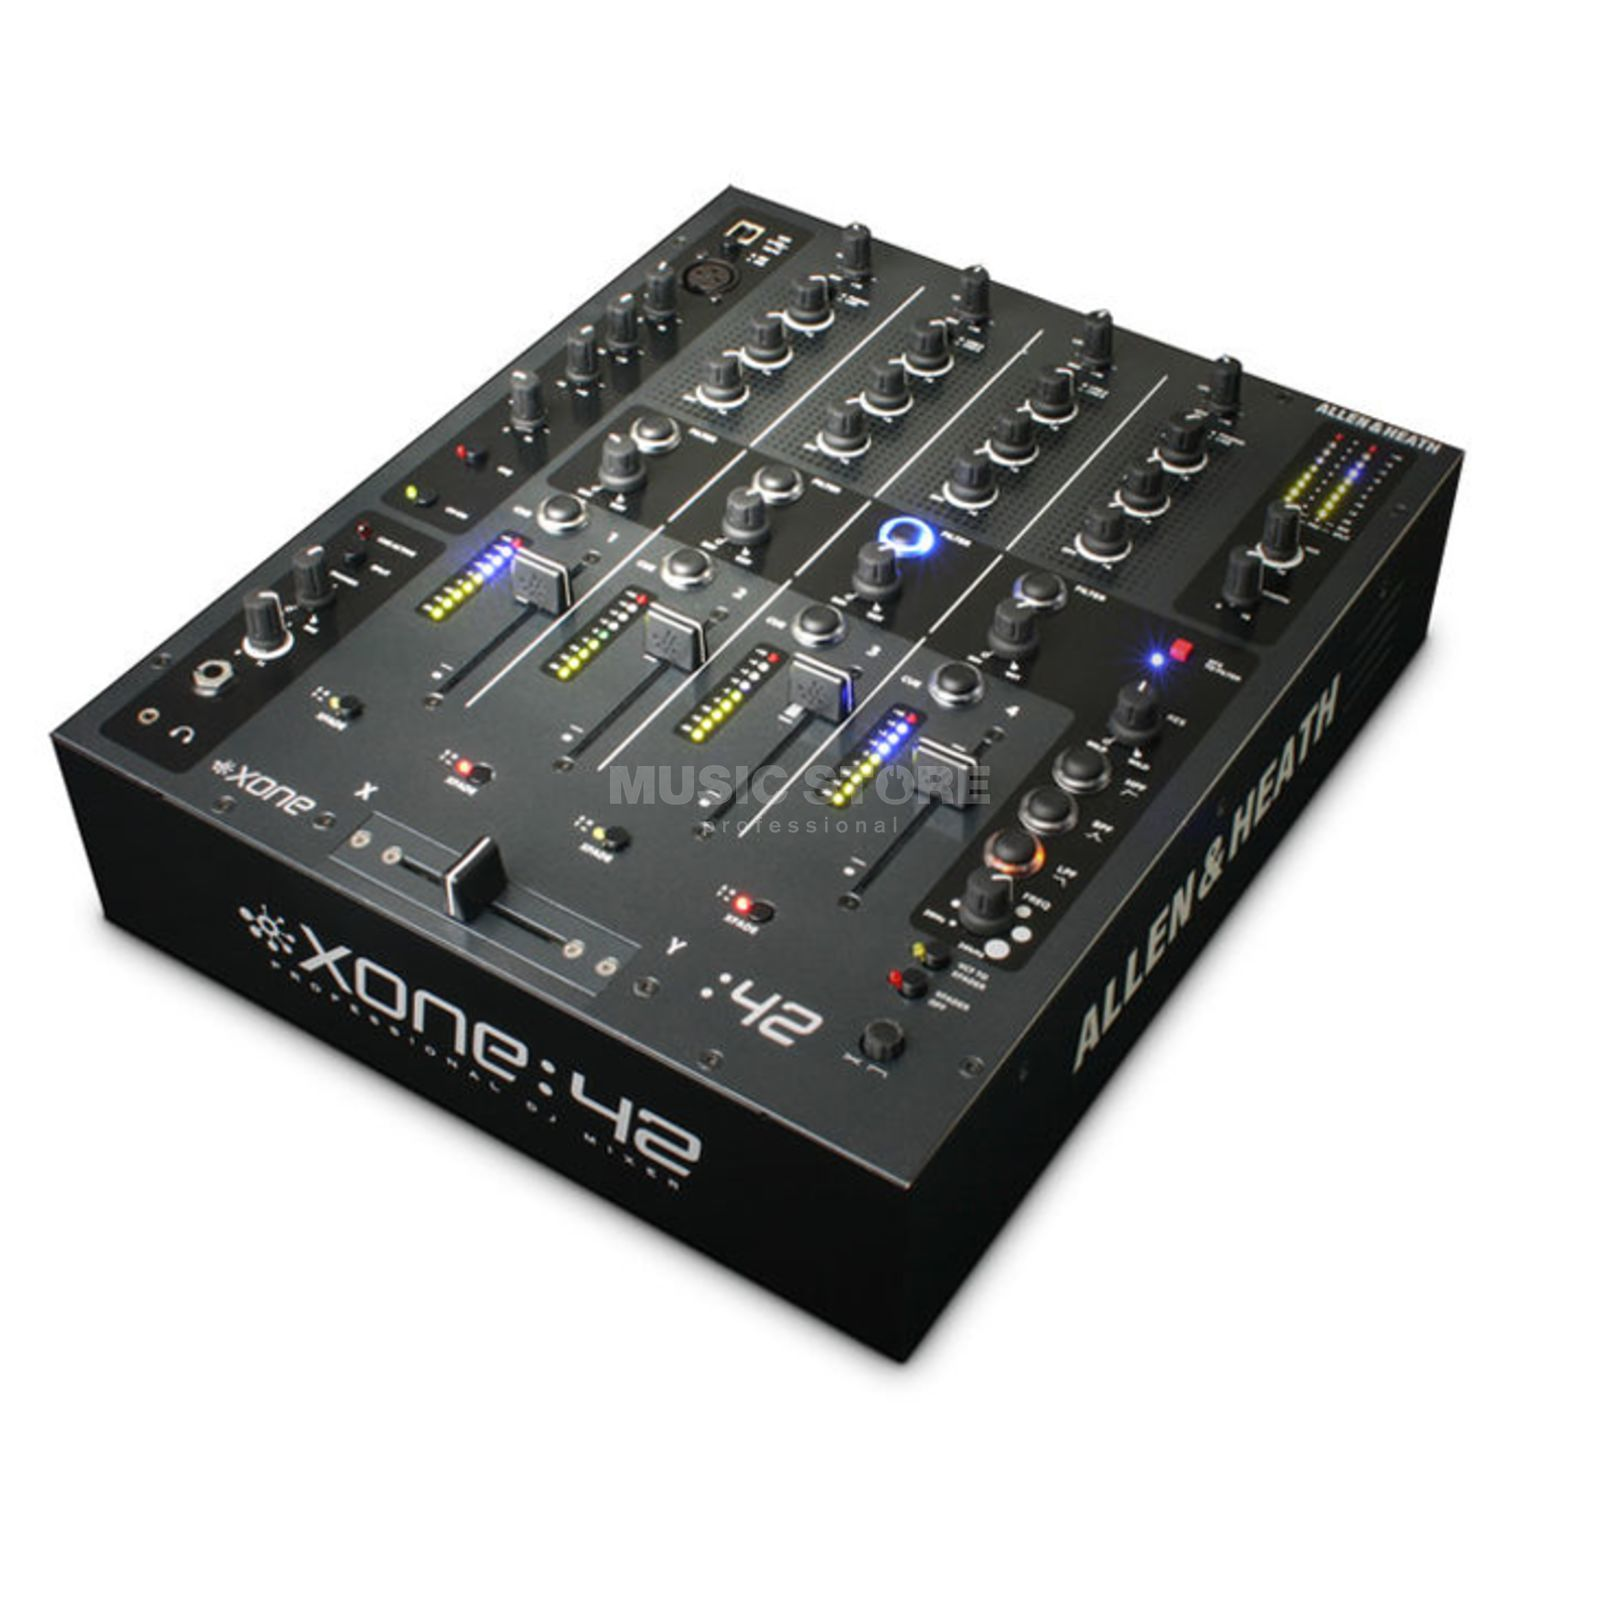 Allen & Heath Xone 42 DJ mixer, USB Audio Interface Productafbeelding